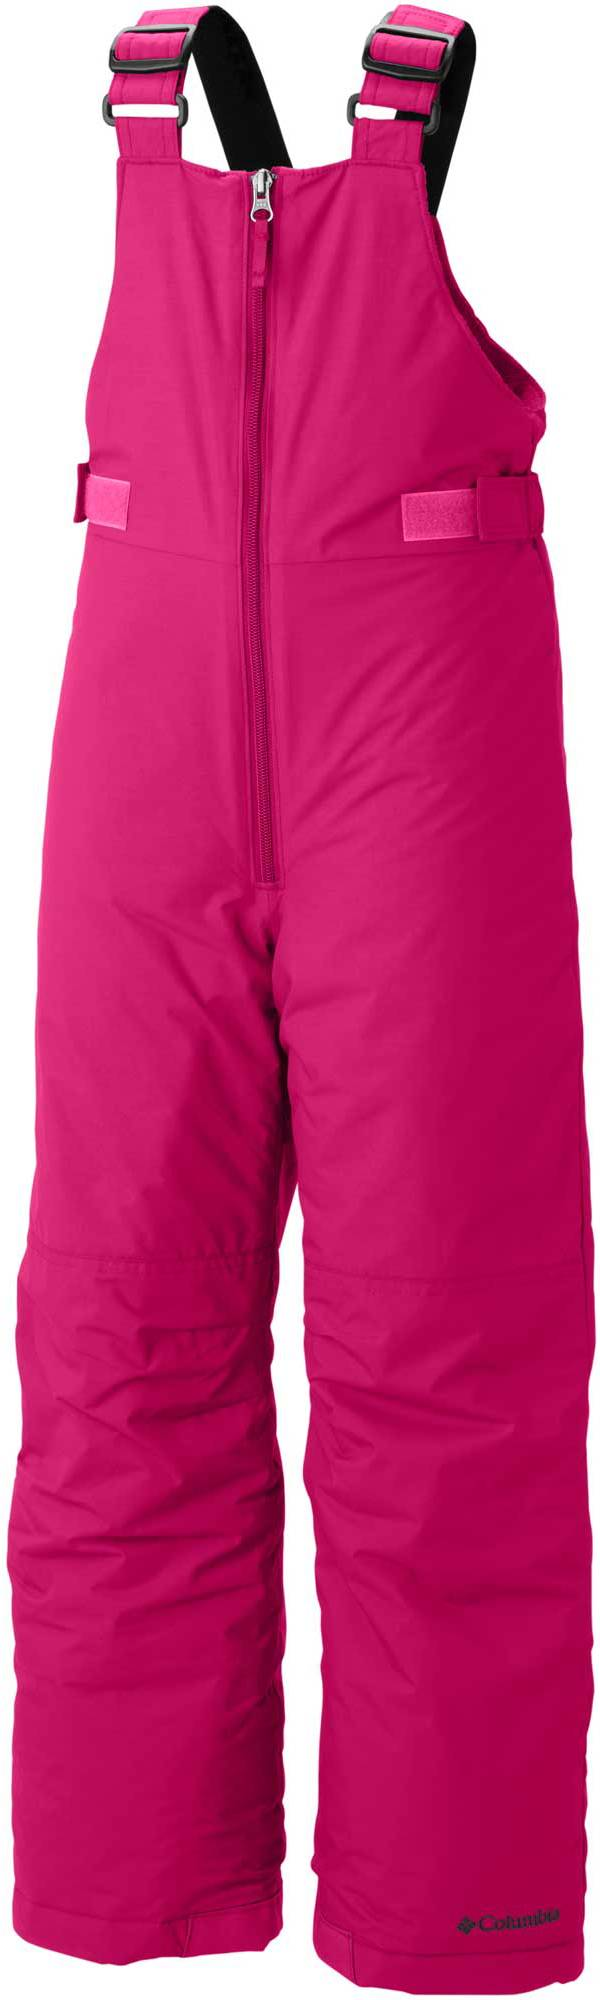 Columbia Girls' Snowslope II Insulated Bib product image